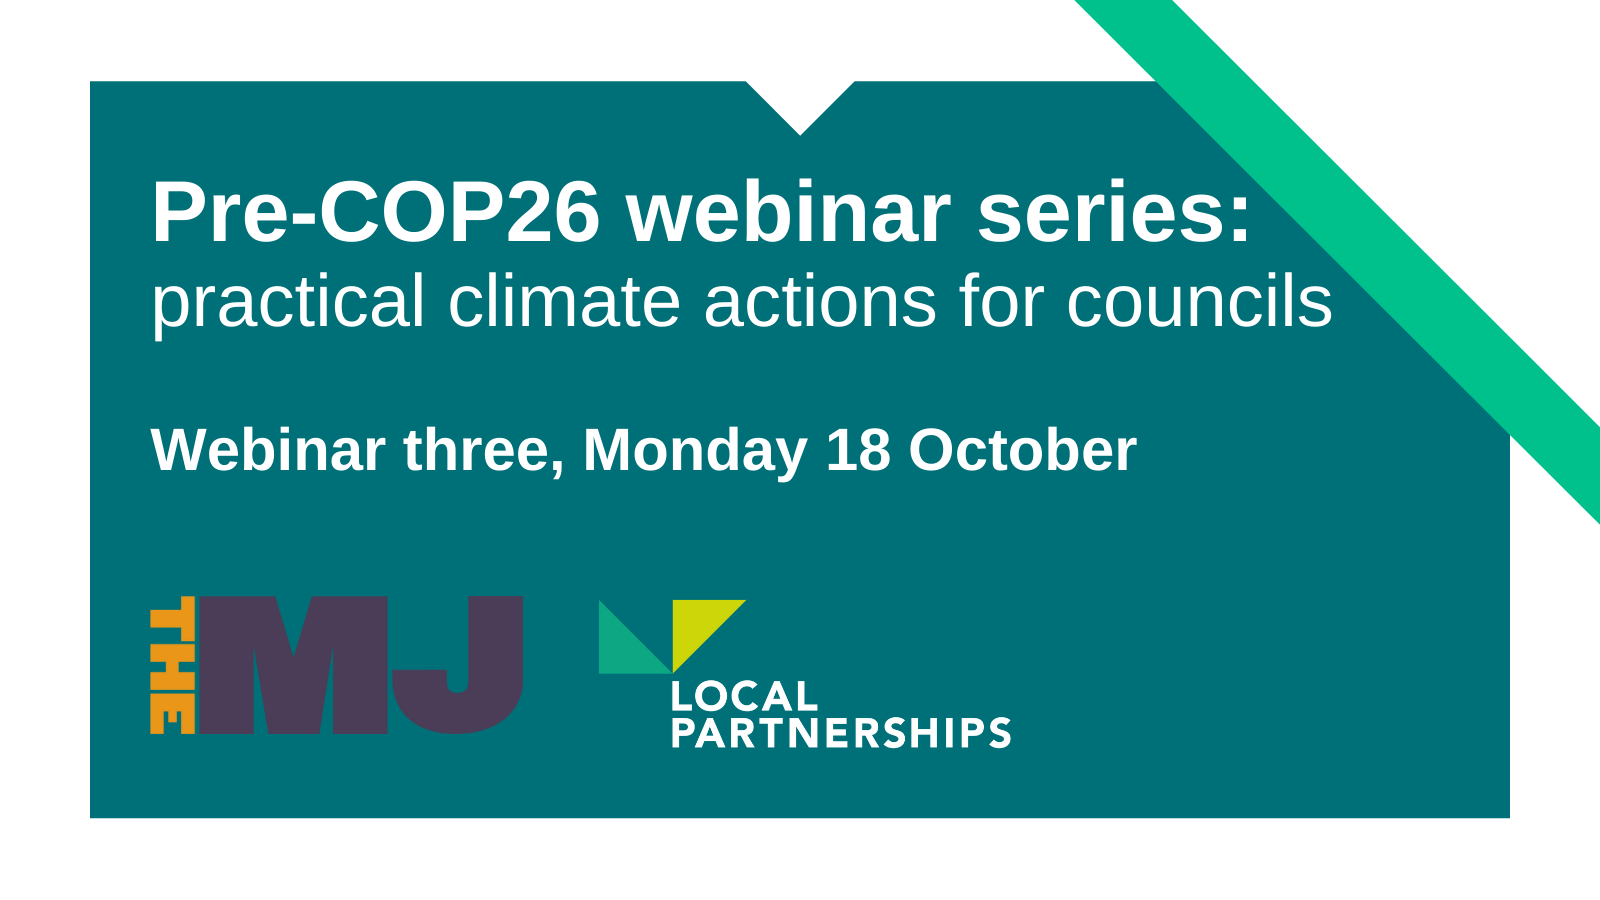 Action on climate crisis webinar three: The MJ and Local Partnerships